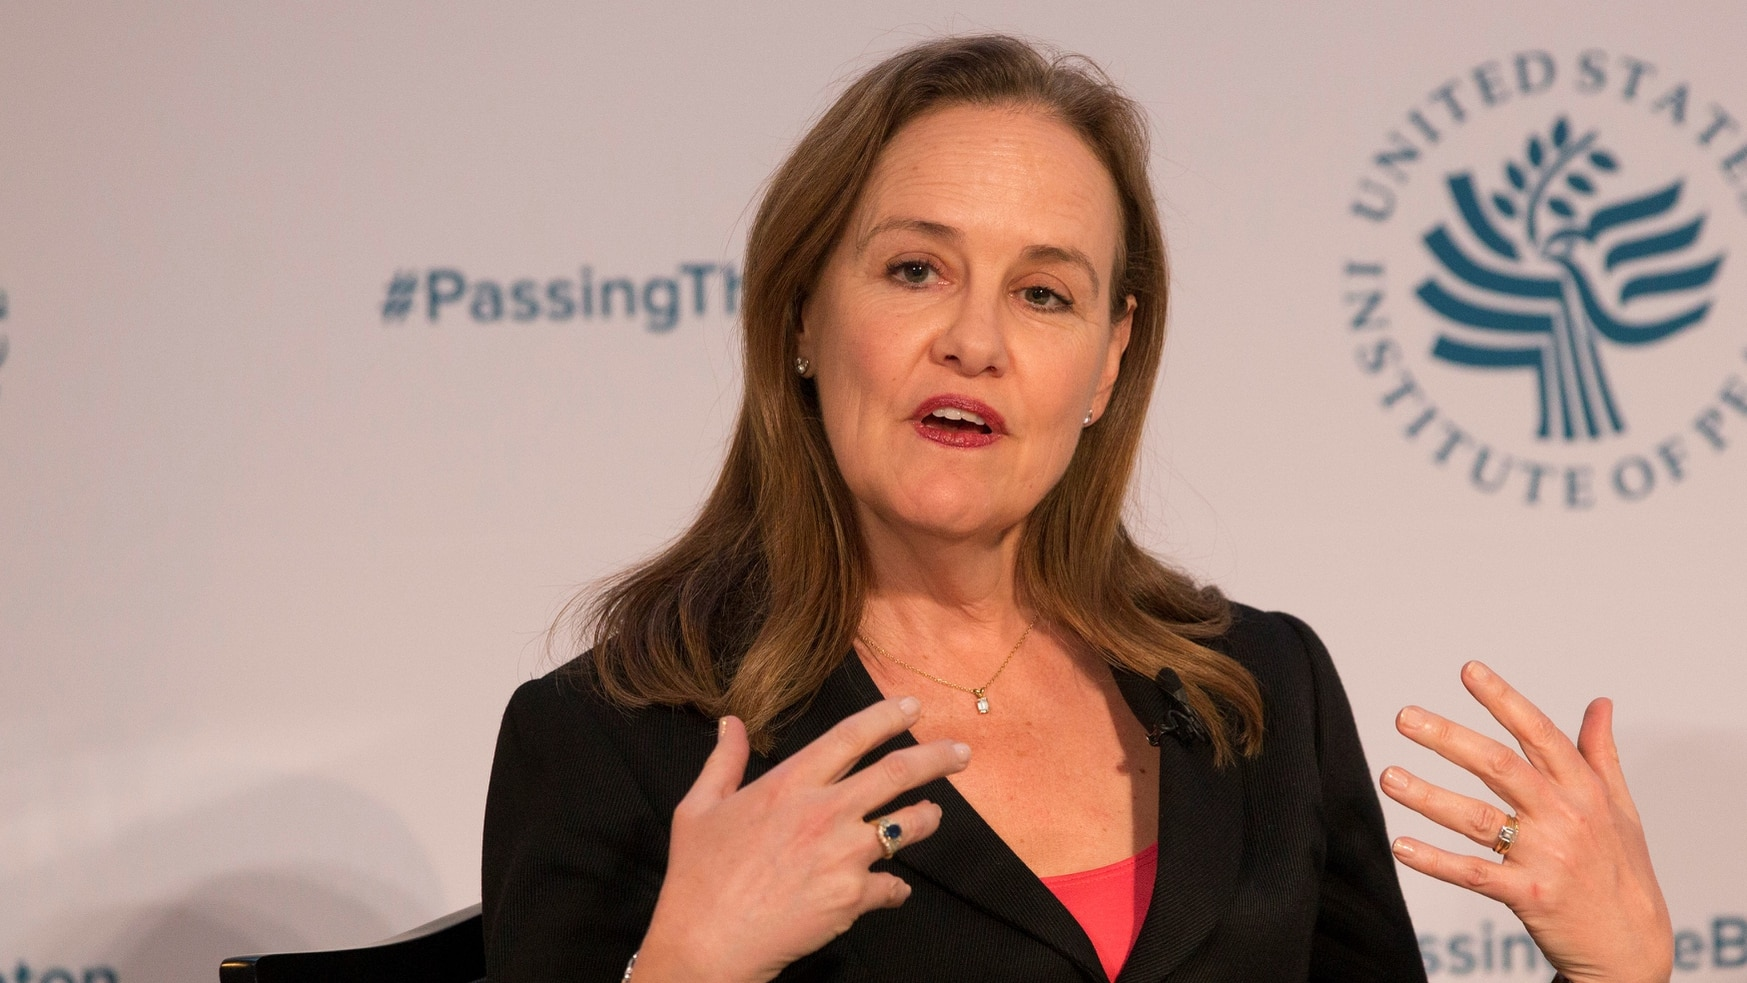 Flournoy founded the Center for a New American Security think tank and led it for several years. (Chris Kleponis/AFP via Getty Images)